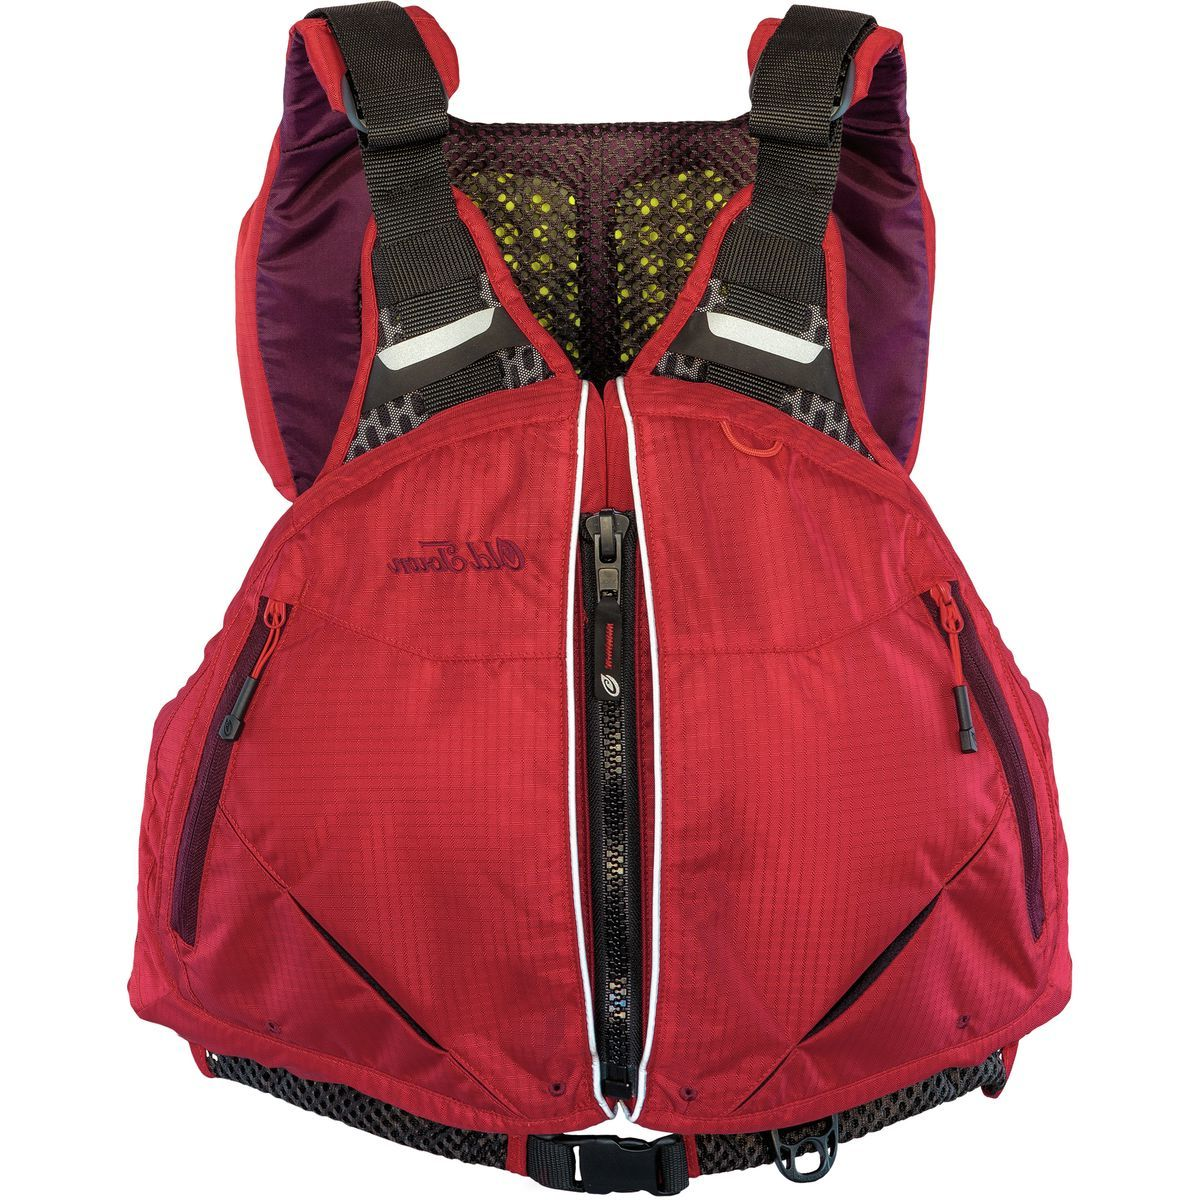 Old Town Solitude Personal Flotation Device - Men's